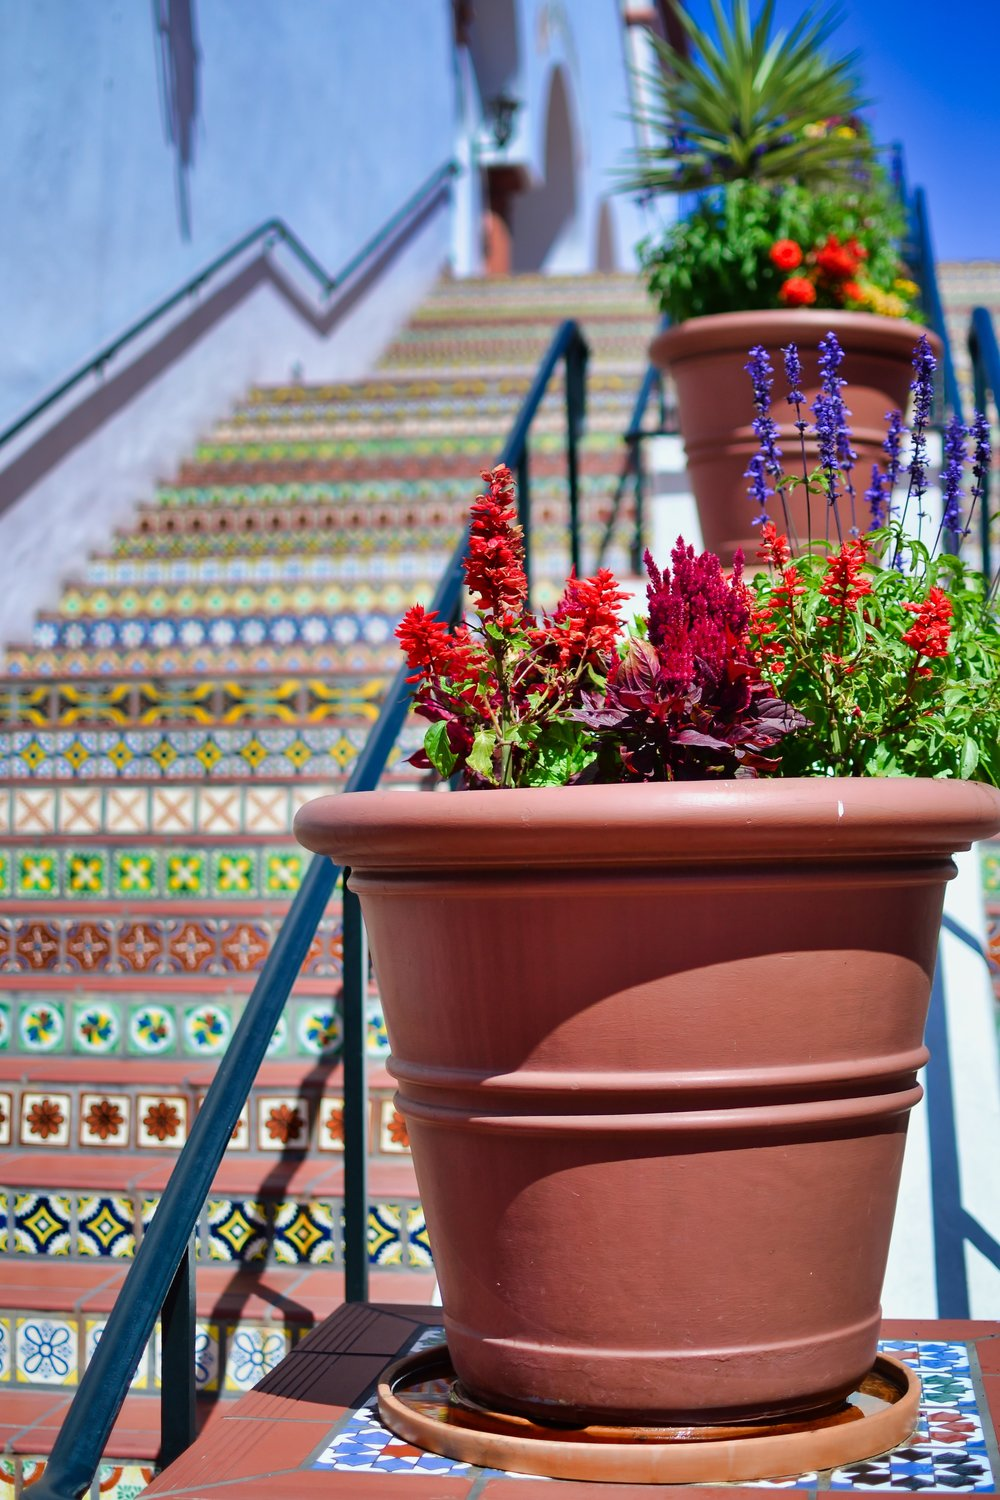 Painted Tile Stairs in Santa Barbara.jpeg